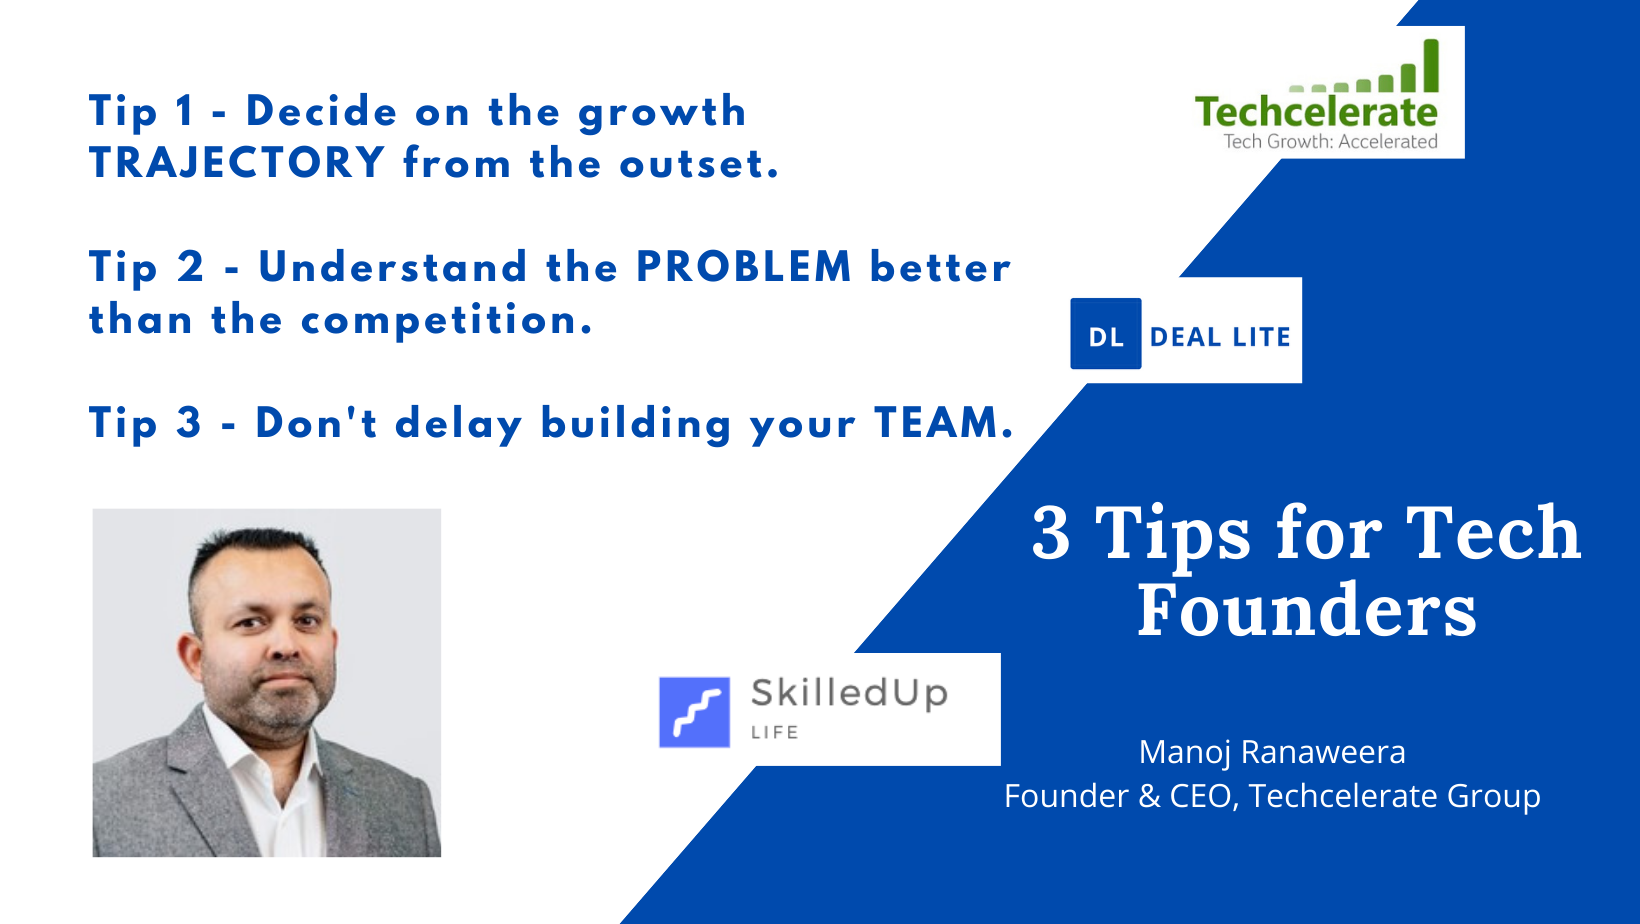 3 Tips for Tech Founders